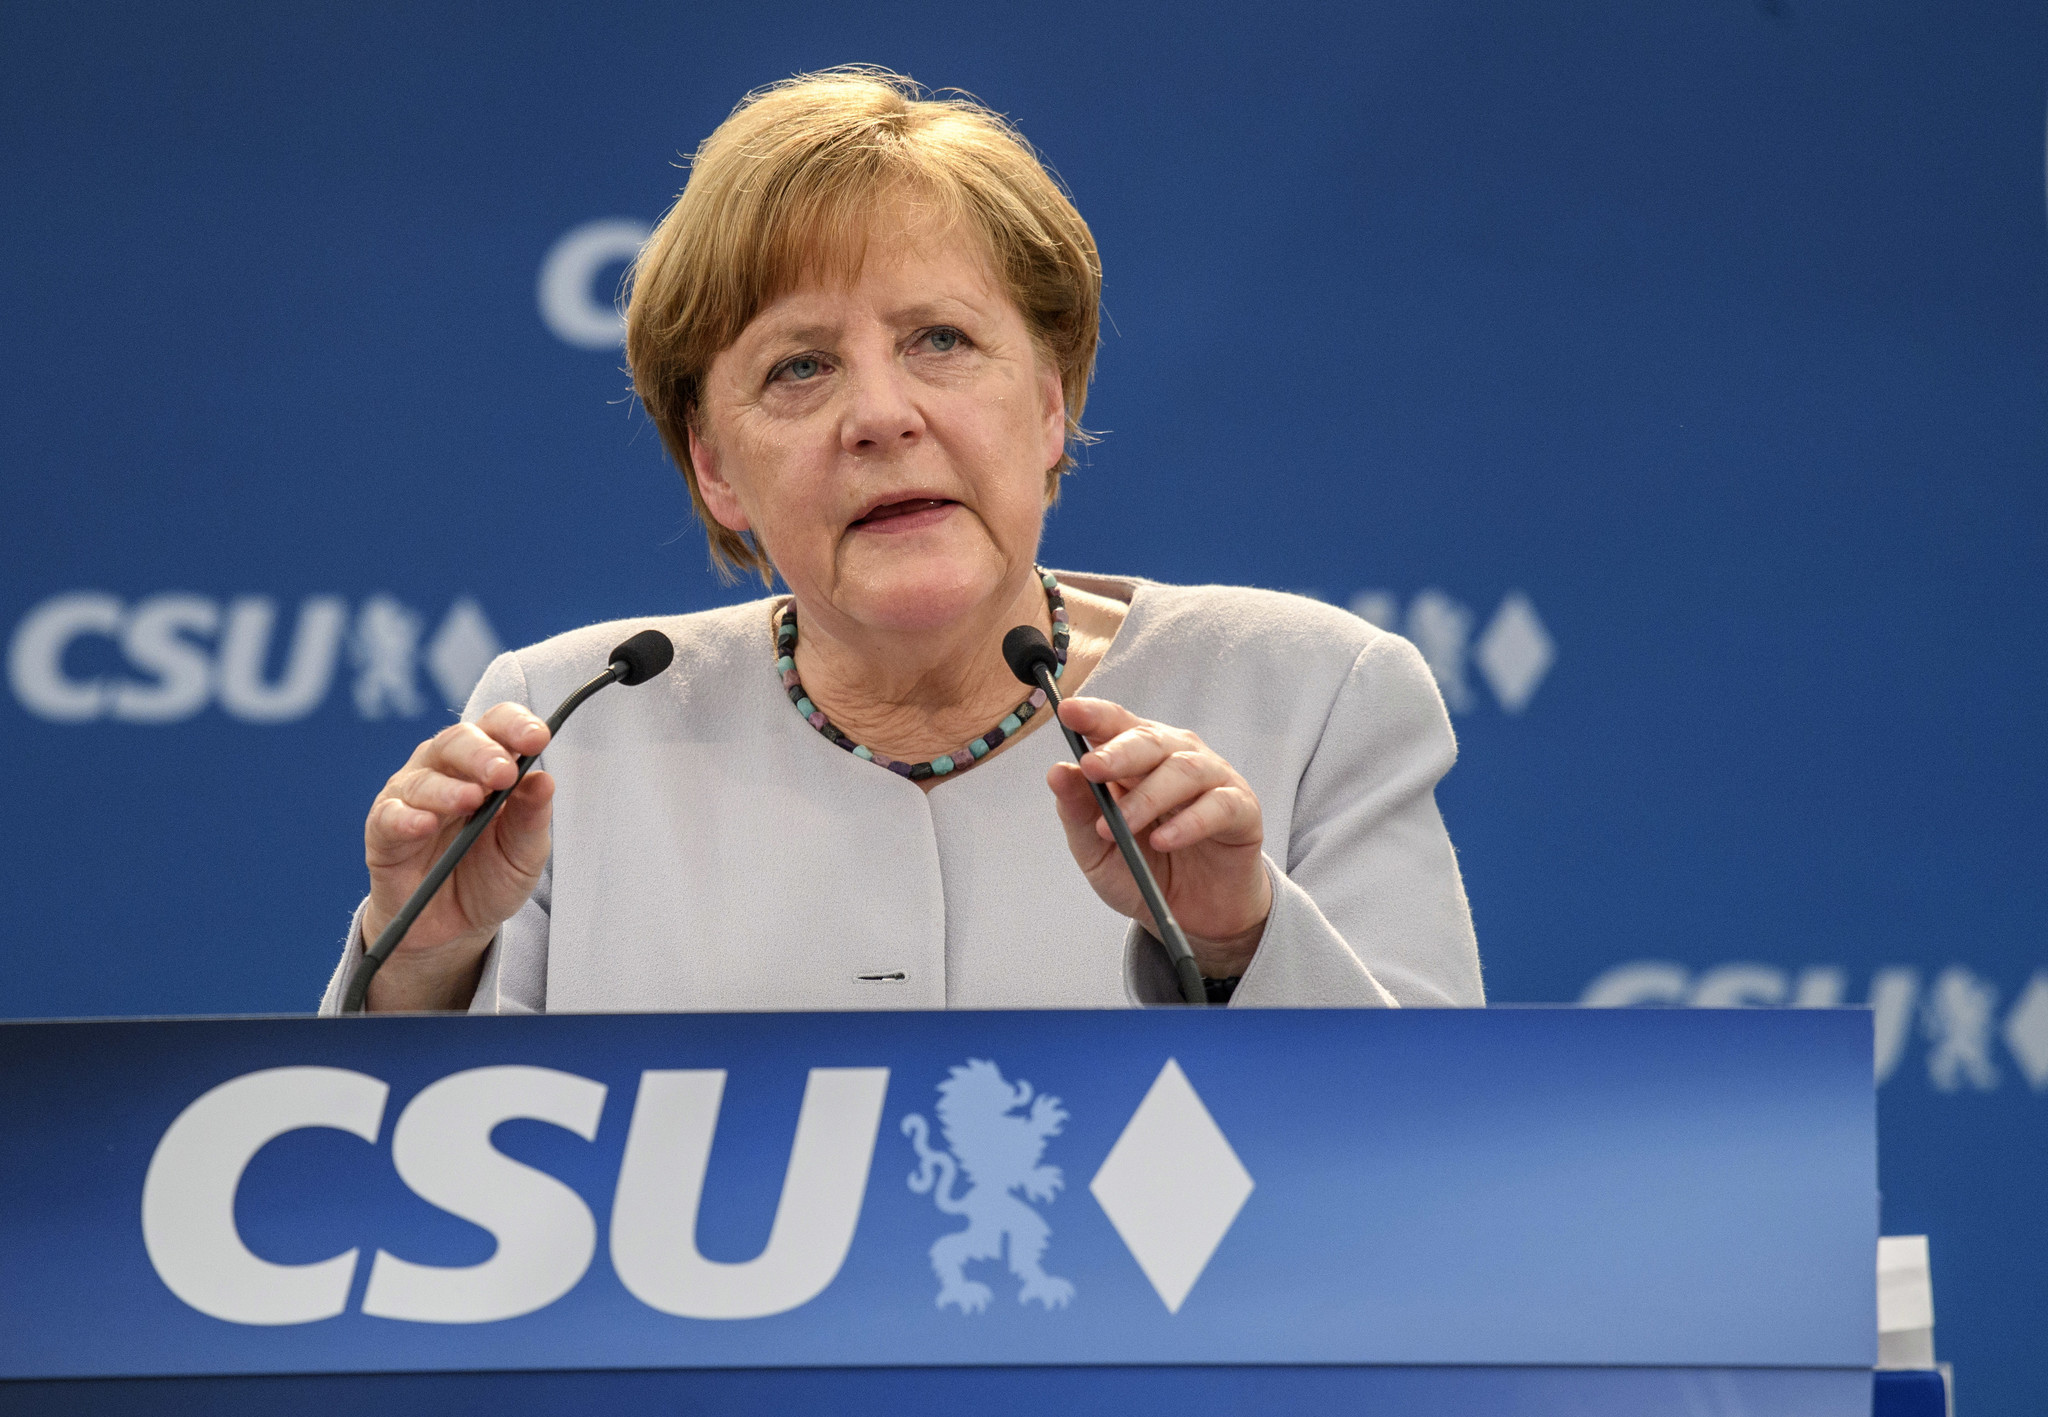 Following Trump's trip, Merkel says Europe can't rely on U.S. anymore